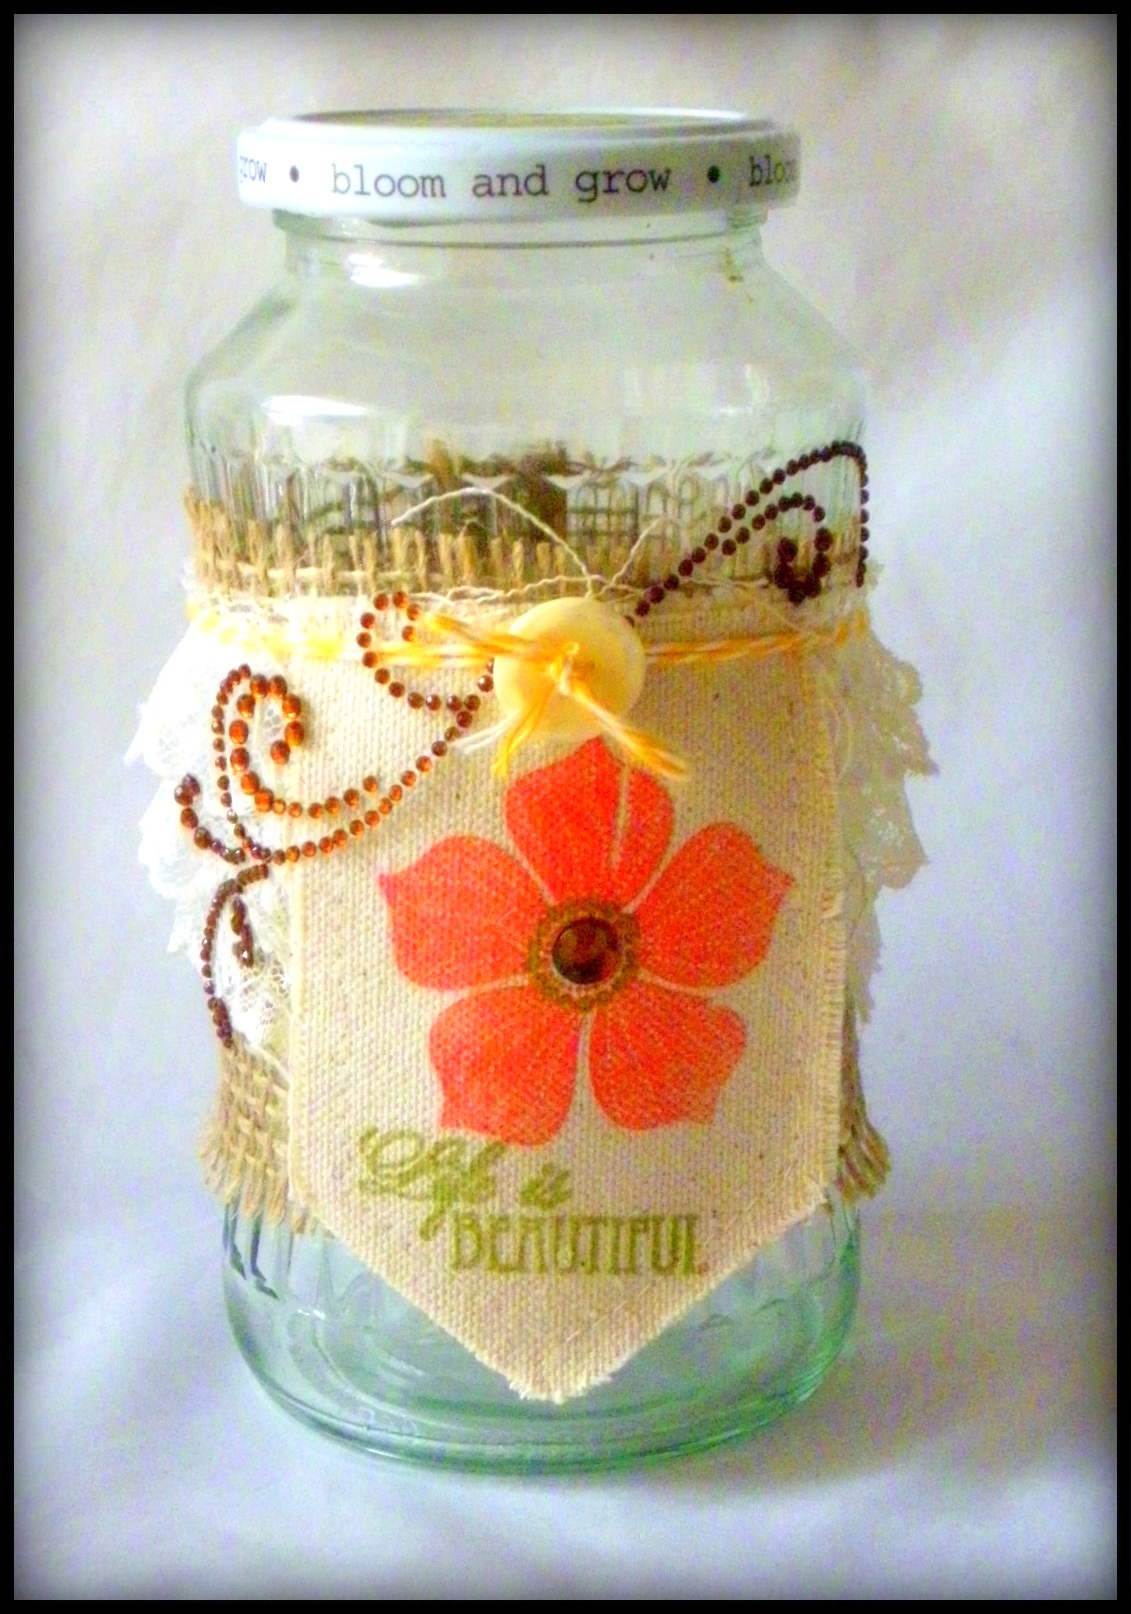 Memento Luxe for an Upcycled Jar with a Fabric Label